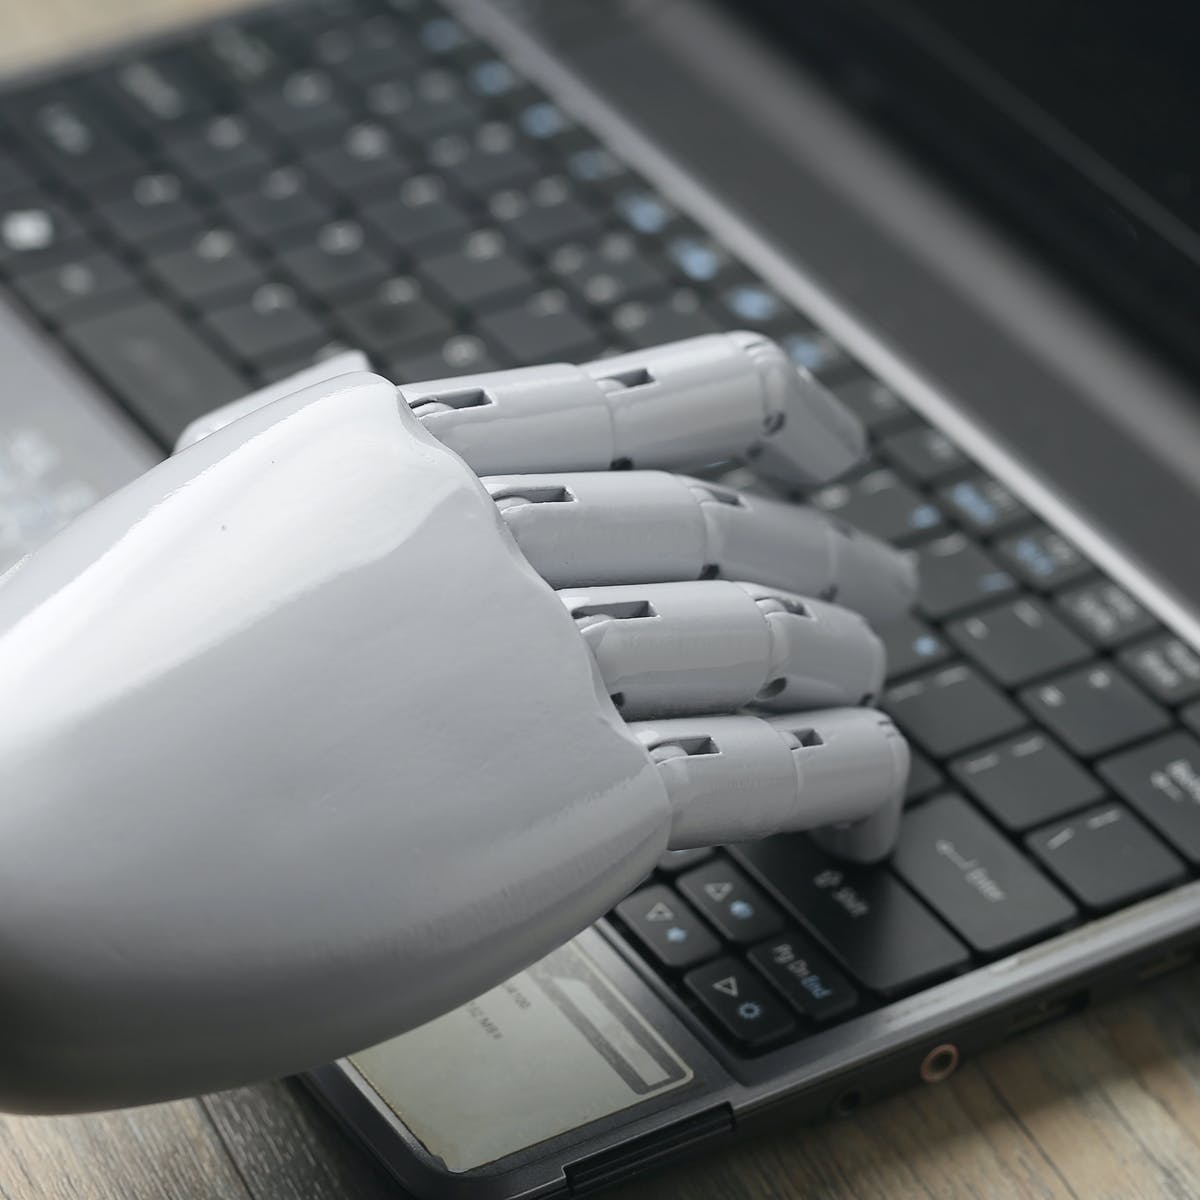 Artificial intelligence cyber attacks are coming – but what